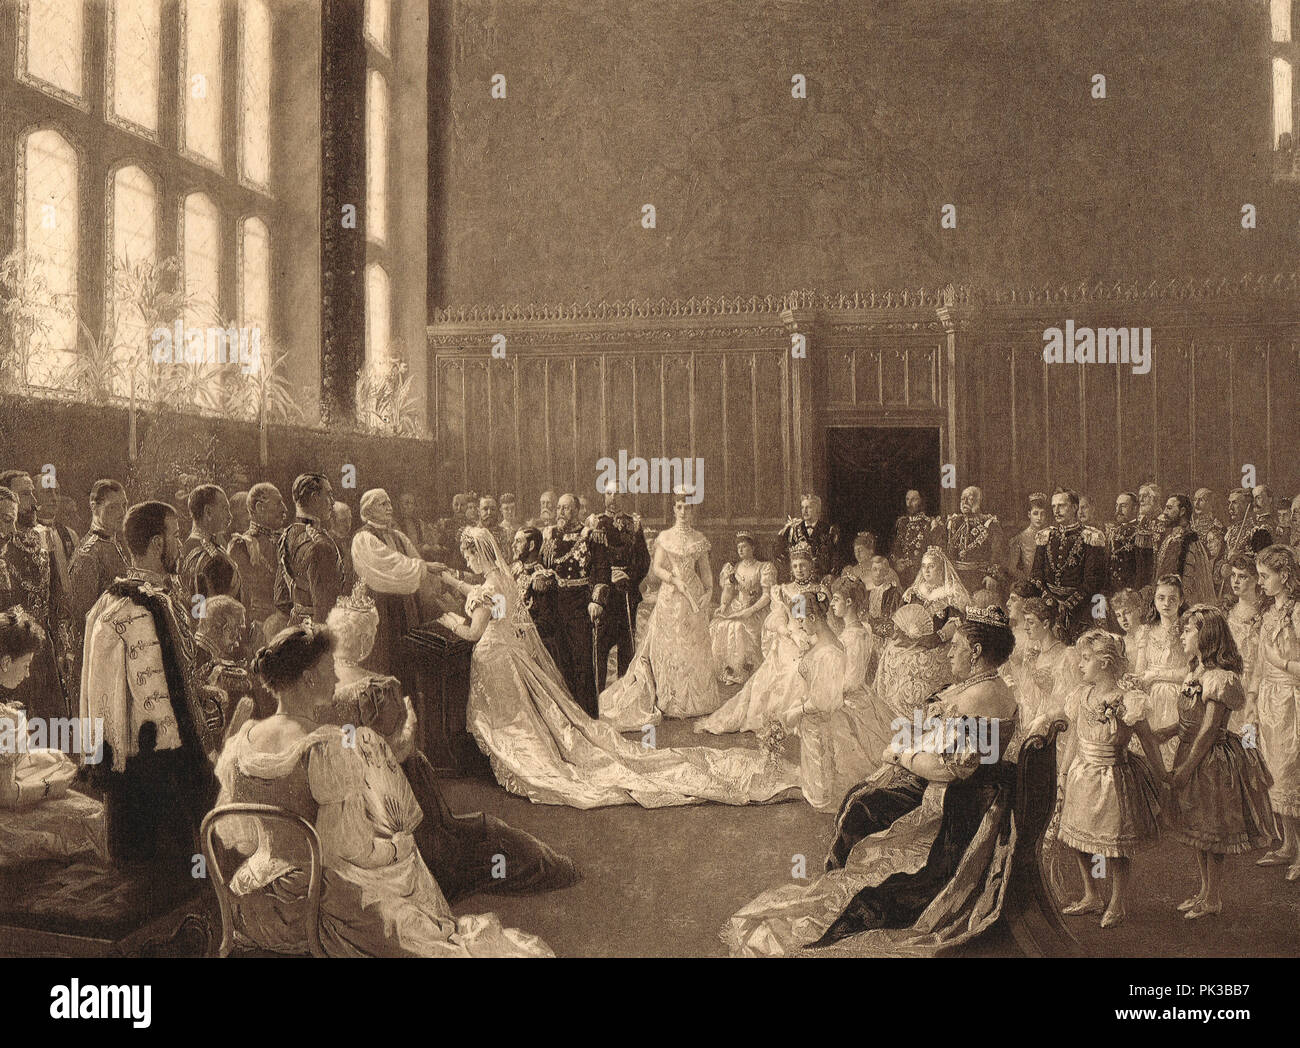 Wedding of Prince George, Duke of York, marriage to Princess Mary of Teck, St James' Palace, London, 6 July 1893 - Stock Image